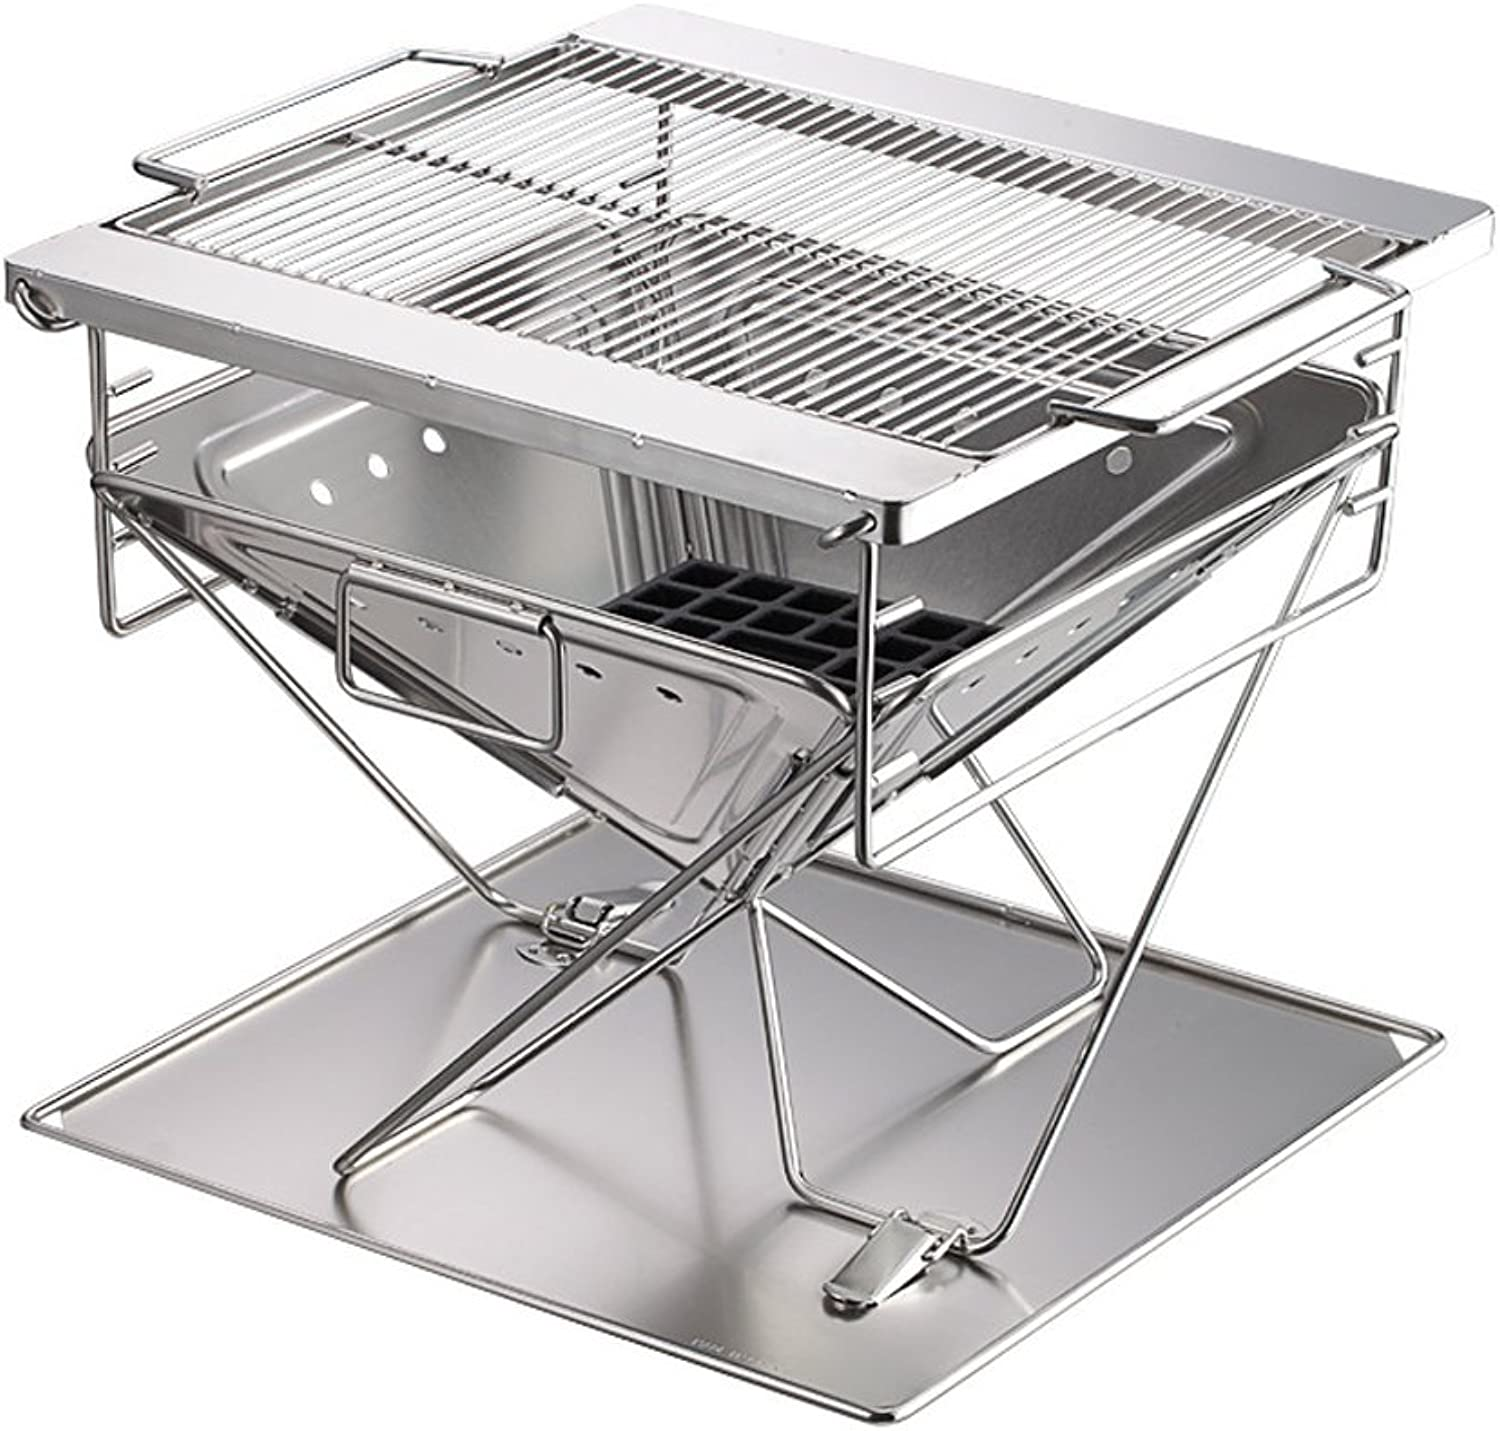 Portable Campfire Grill StandPortable Stainless Steel Charcoal Grill with Grill Cookouts BBQ for Camping Hiking,(40.3  40.3  38 cm)